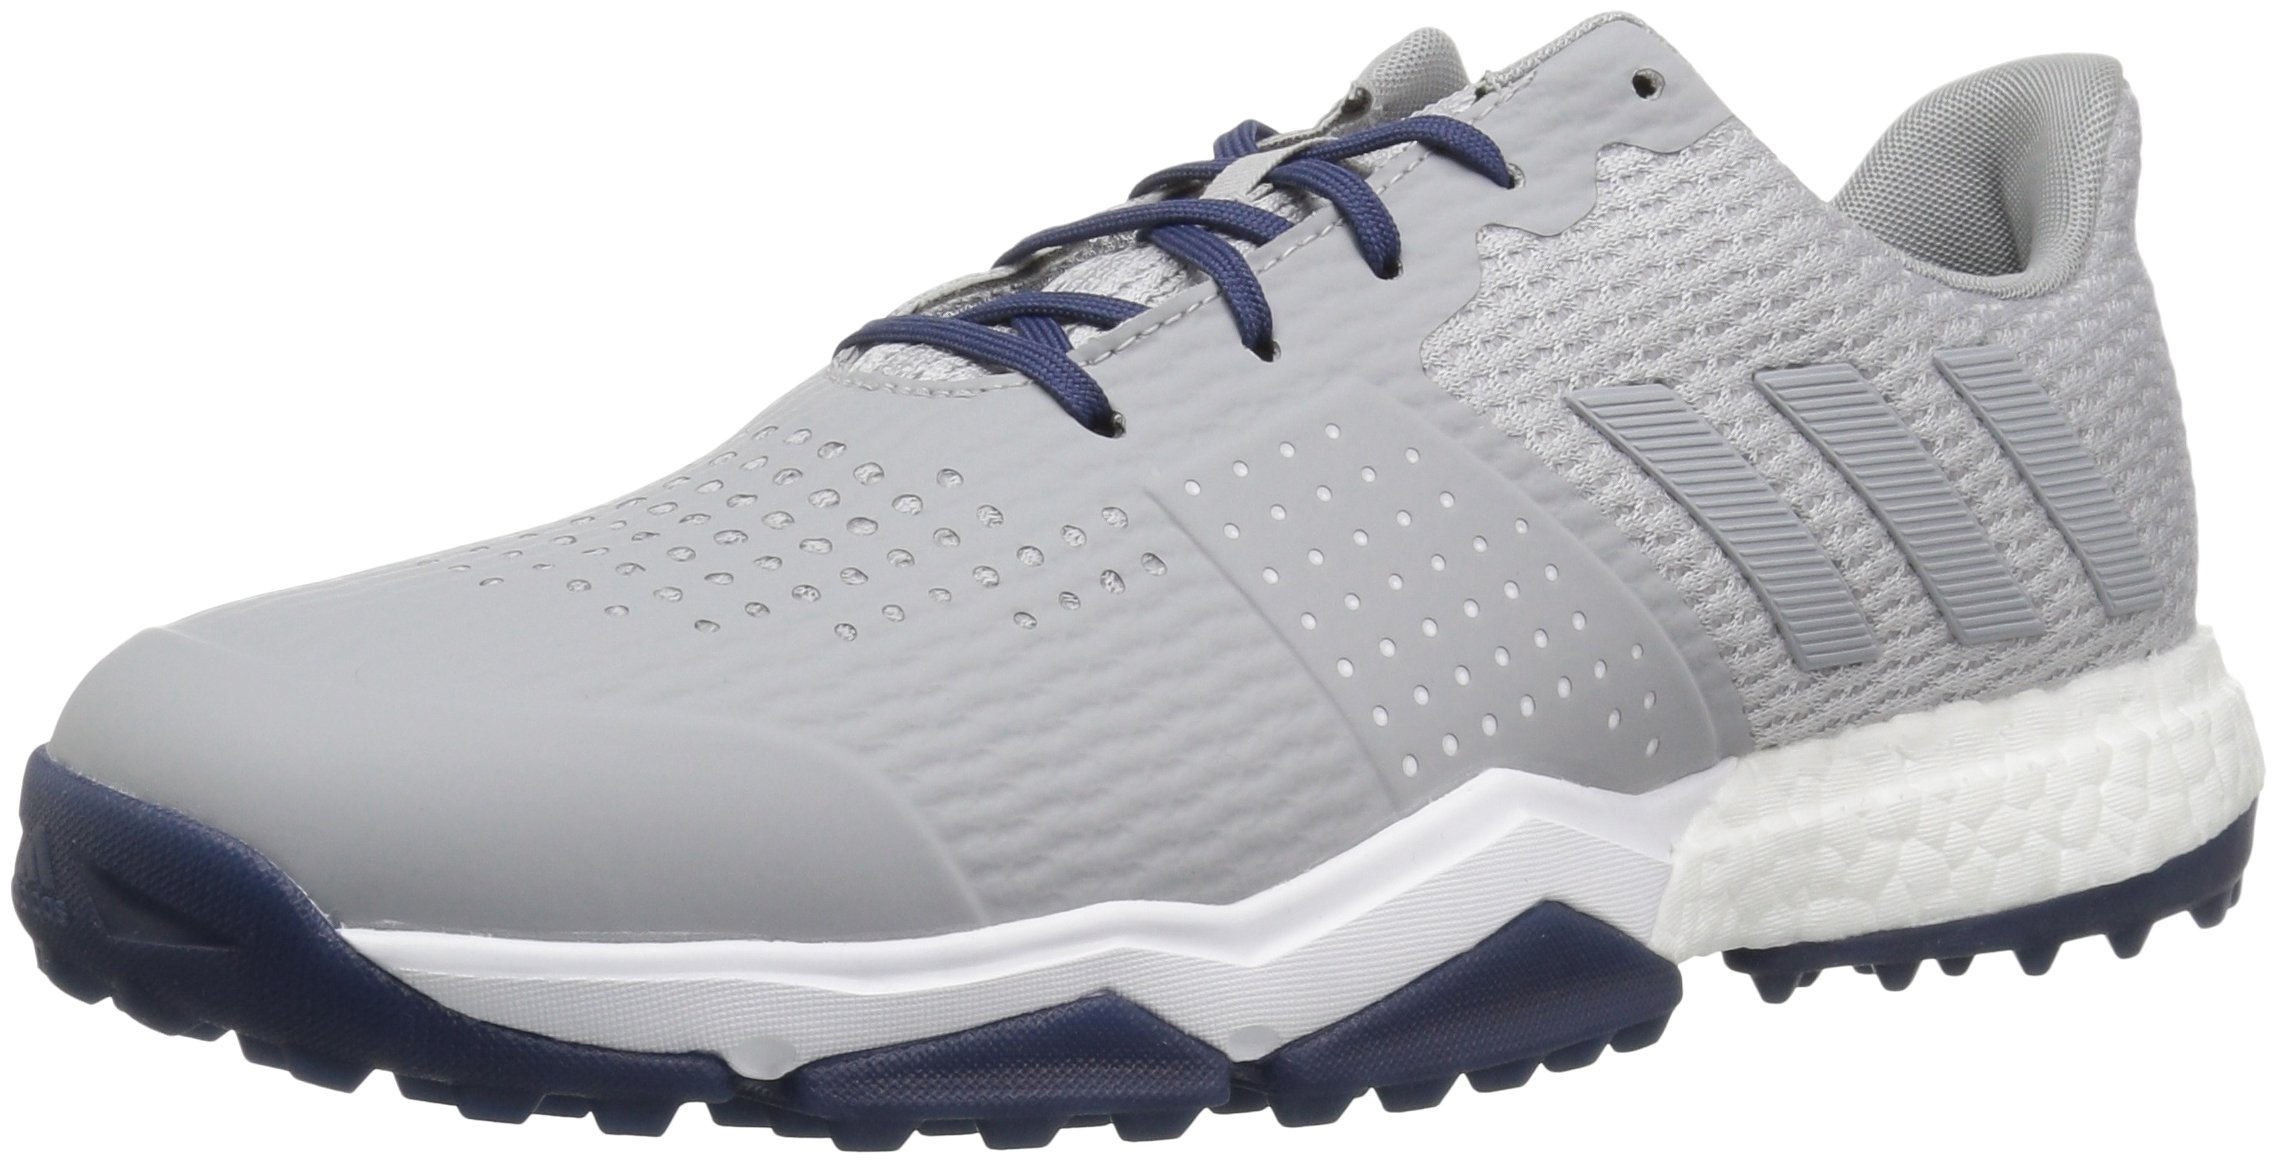 adidas Men's Adipower s Boost 3 Golf Shoe, Grey/Noble Indigo, 10 M US by adidas